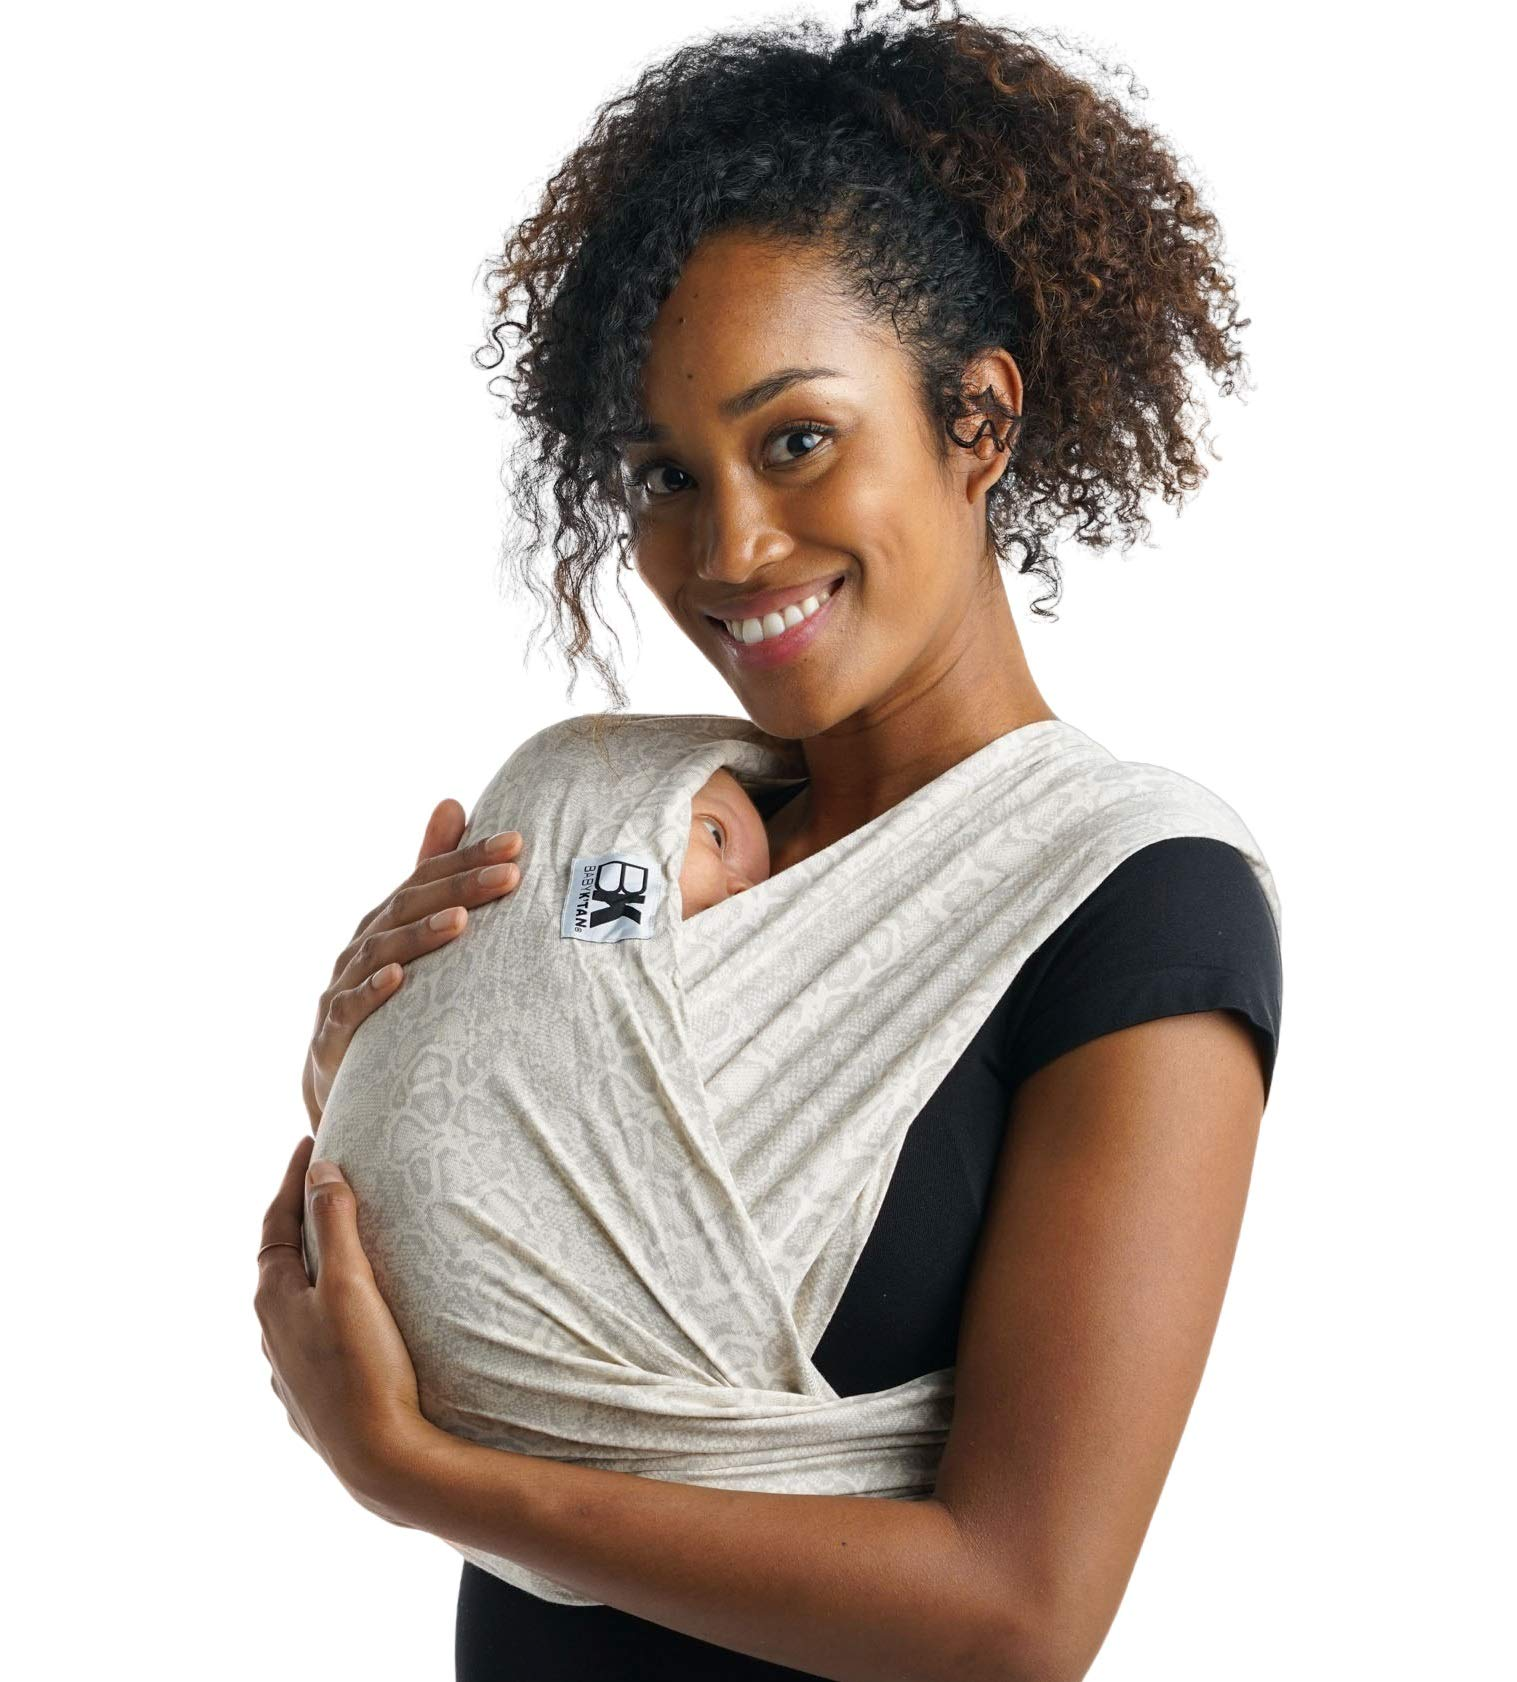 Baby K'tan Print Baby Wrap Carrier, Infant and Child Sling - Simple Wrap Holder for Babywearing - No Rings or Buckles - Carry Newborn up to 35 lbs, Savvy Snake, L (W Dress 16-20 / M Jacket 43-46)